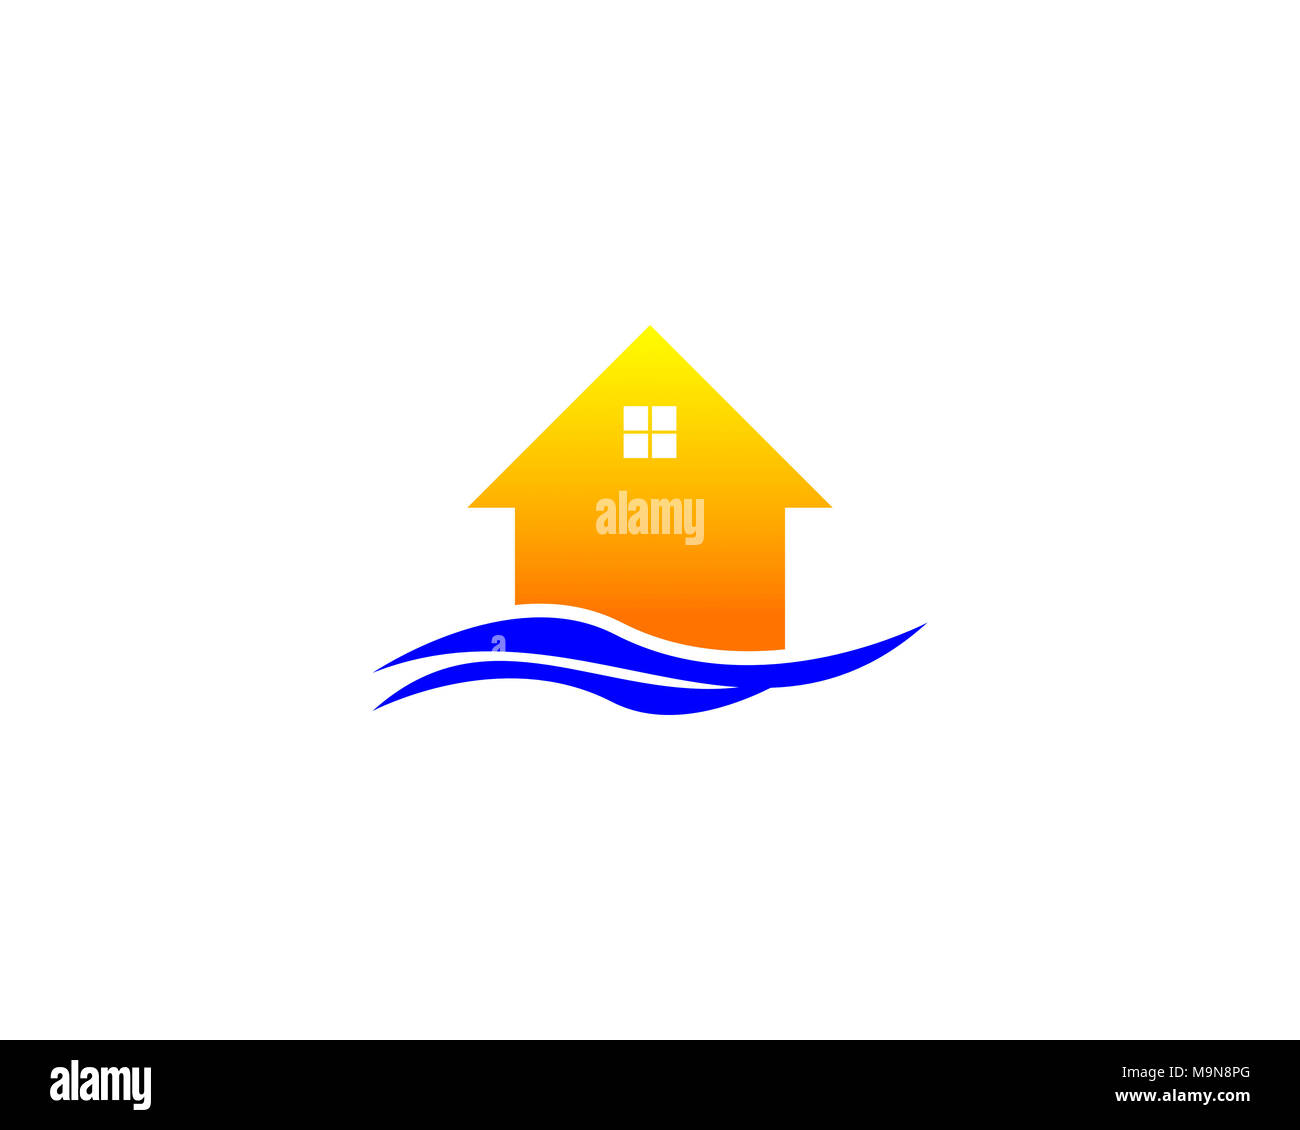 Is A Symbol Associated With Beachside Homes Stock Photo 178103480